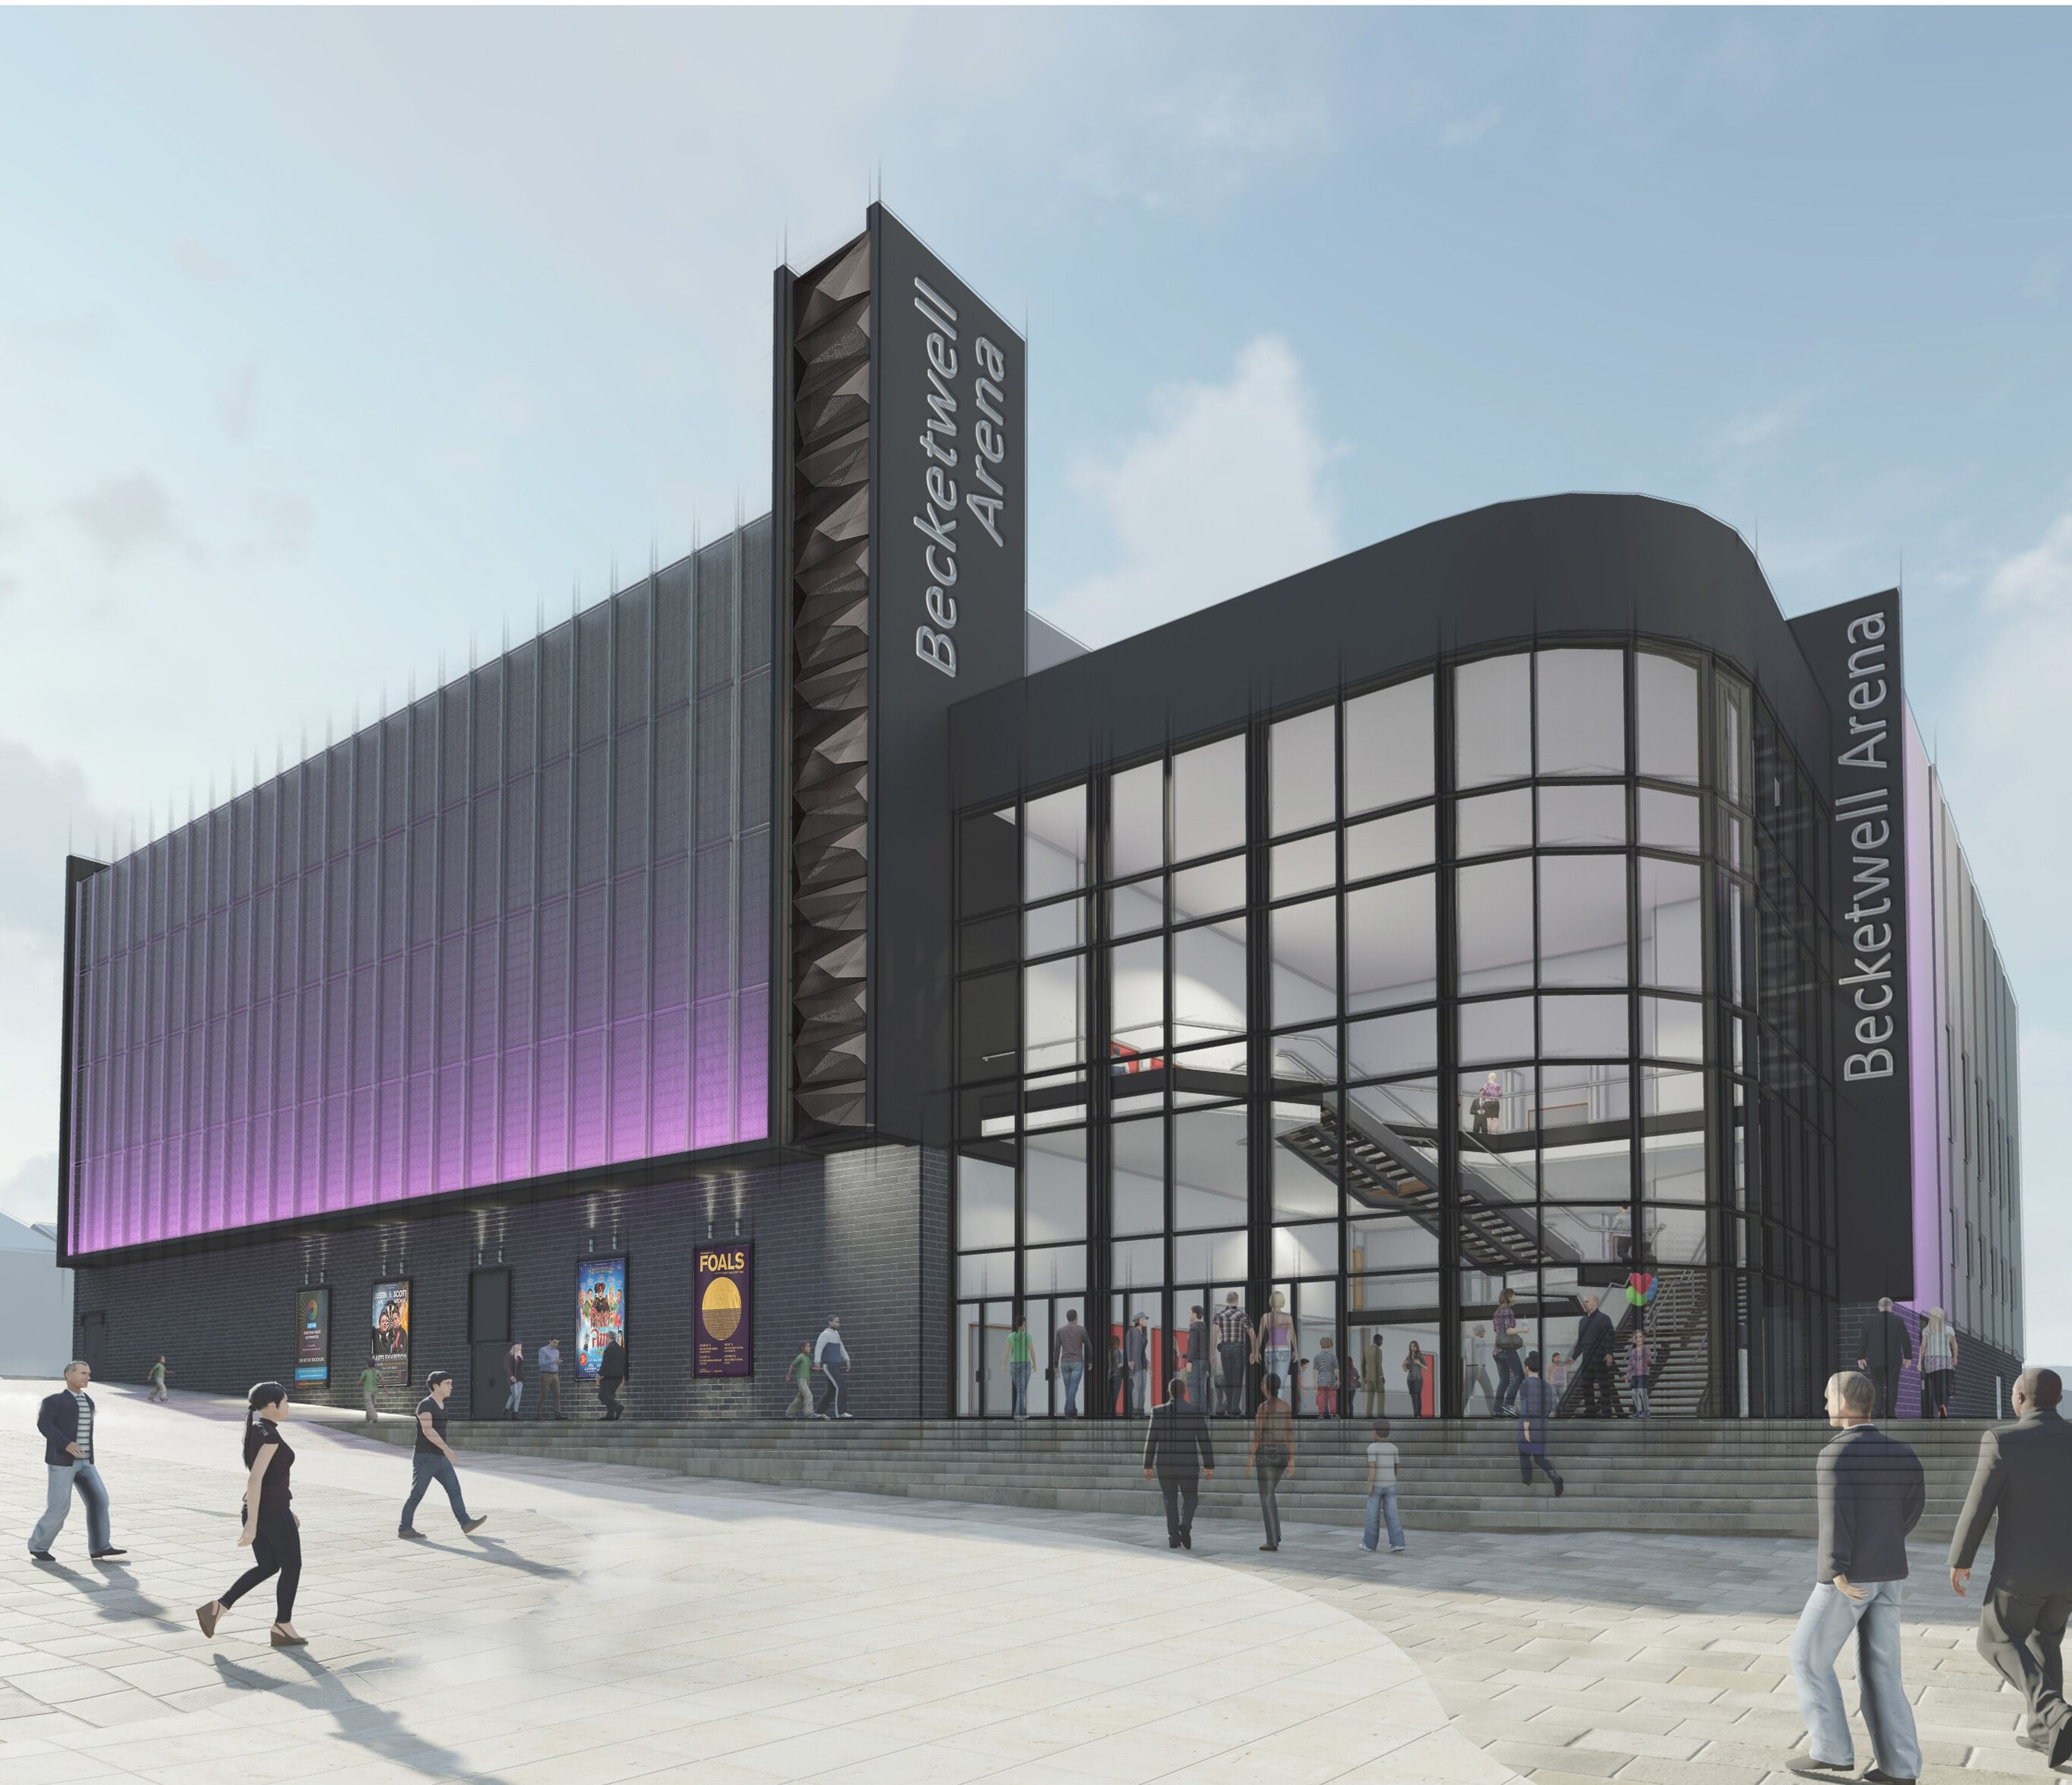 OVERWHELMING SUPPORT FOR THE NEW BECKETWELL PERFORMANCE VENUE FOLLOWING PUBLIC CONSULTATION EVENT